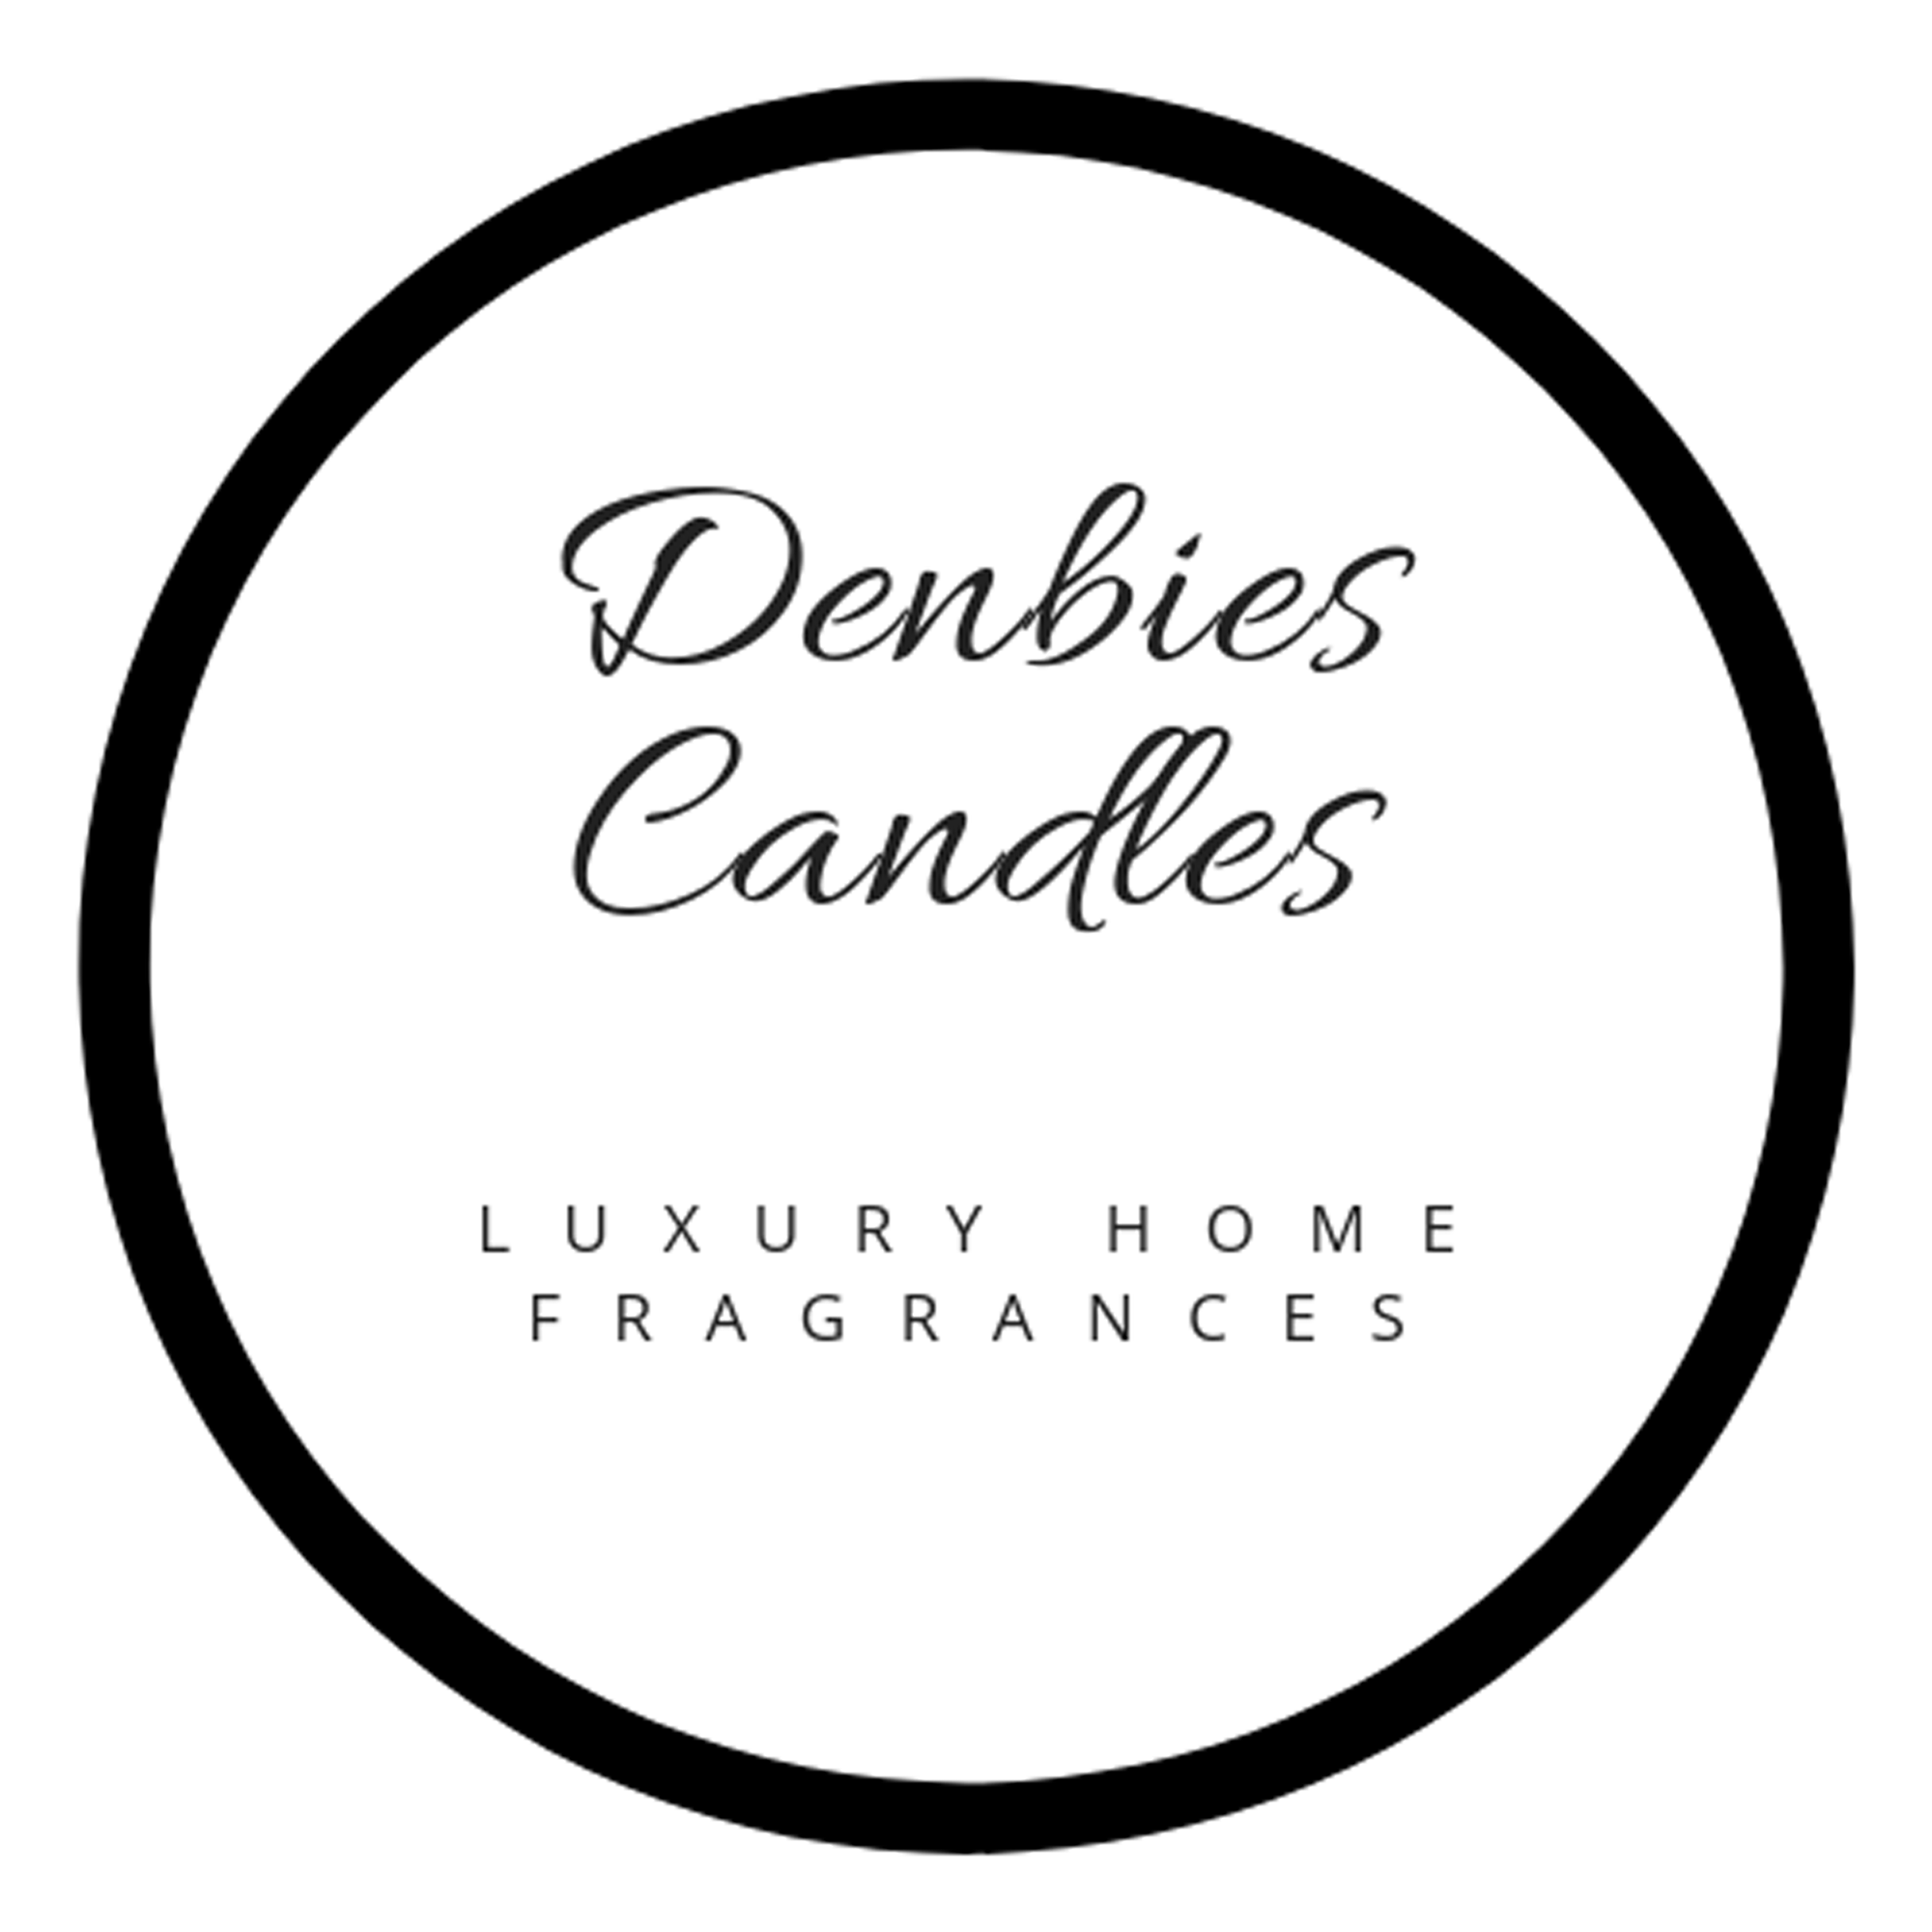 Denbies Candles Luxury Home Fragrances